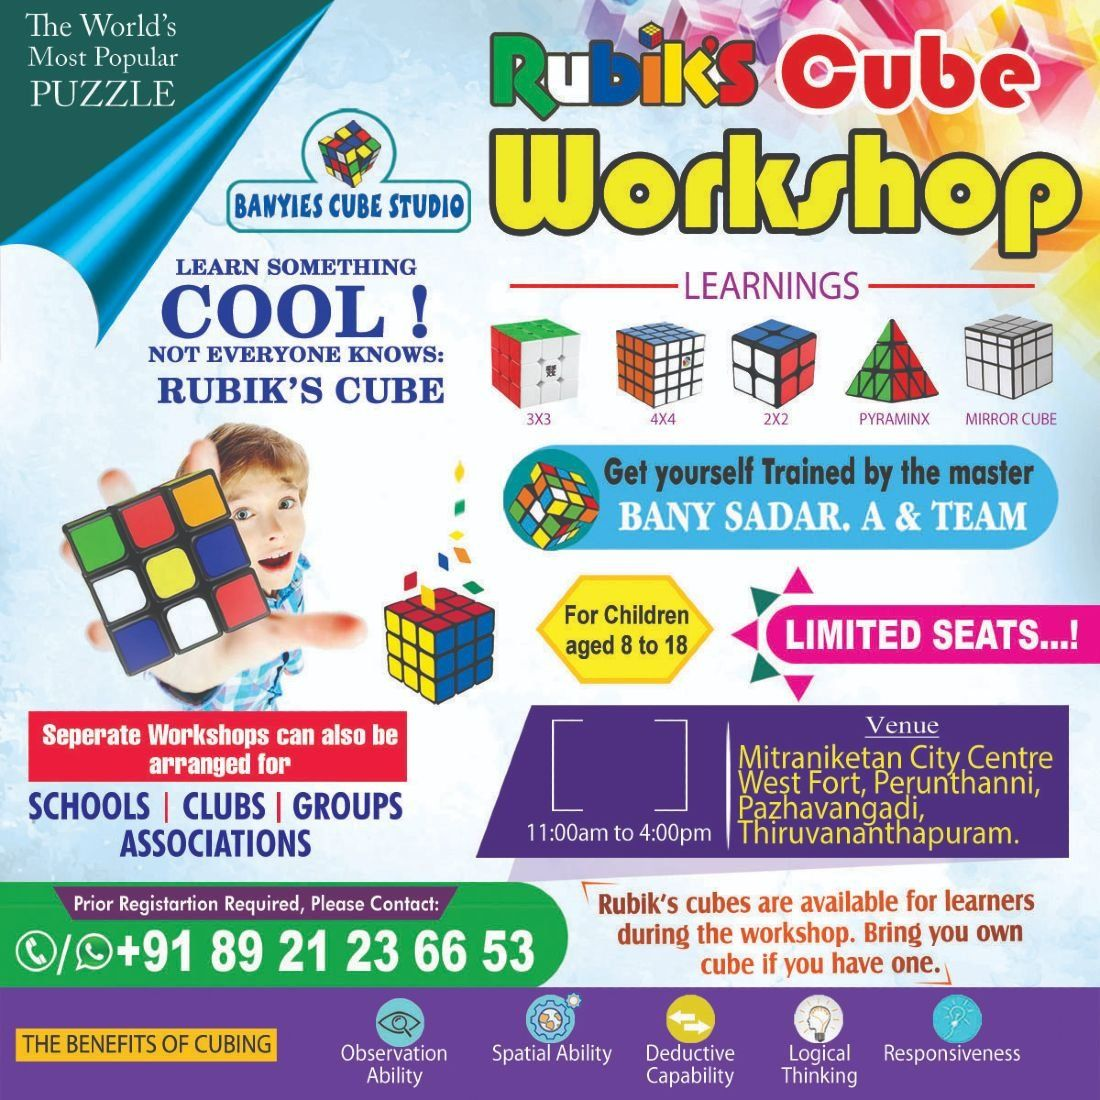 Rubiks cube workshop